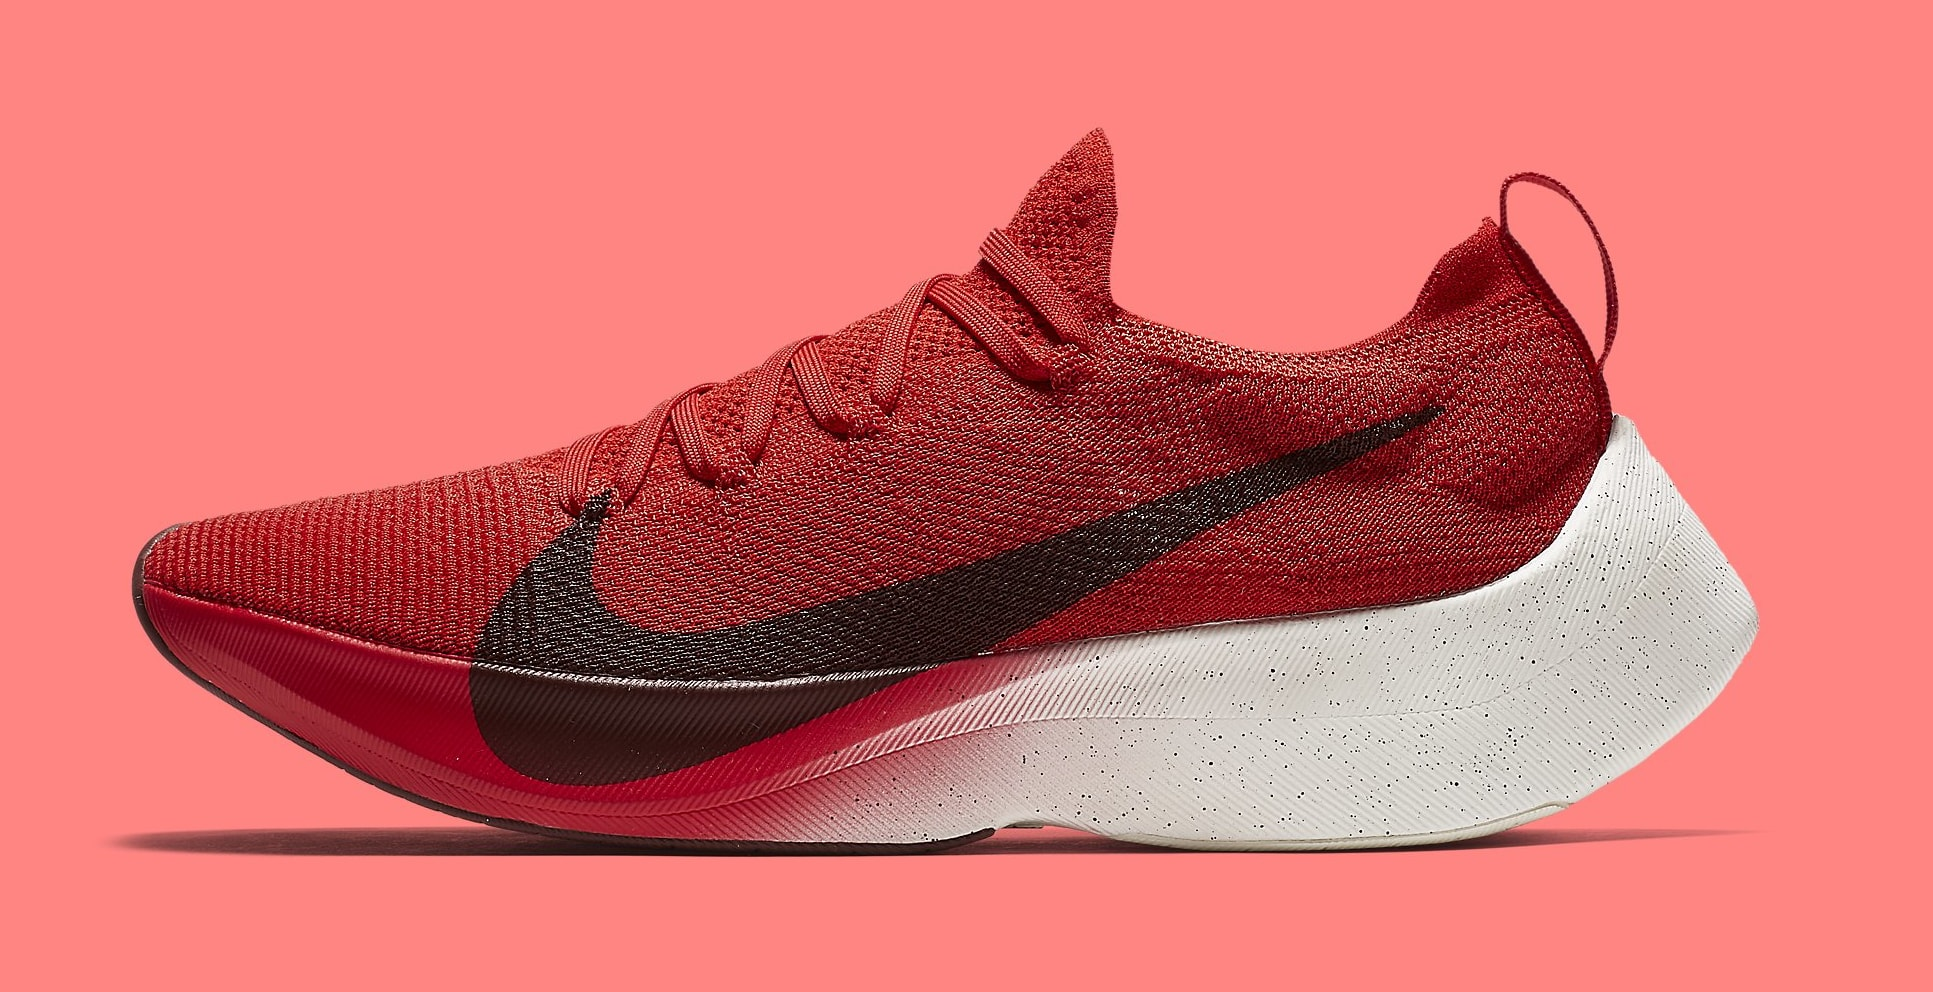 Nike Vapor Street Flyknit 'Red' AQ1763-600 (Lateral)